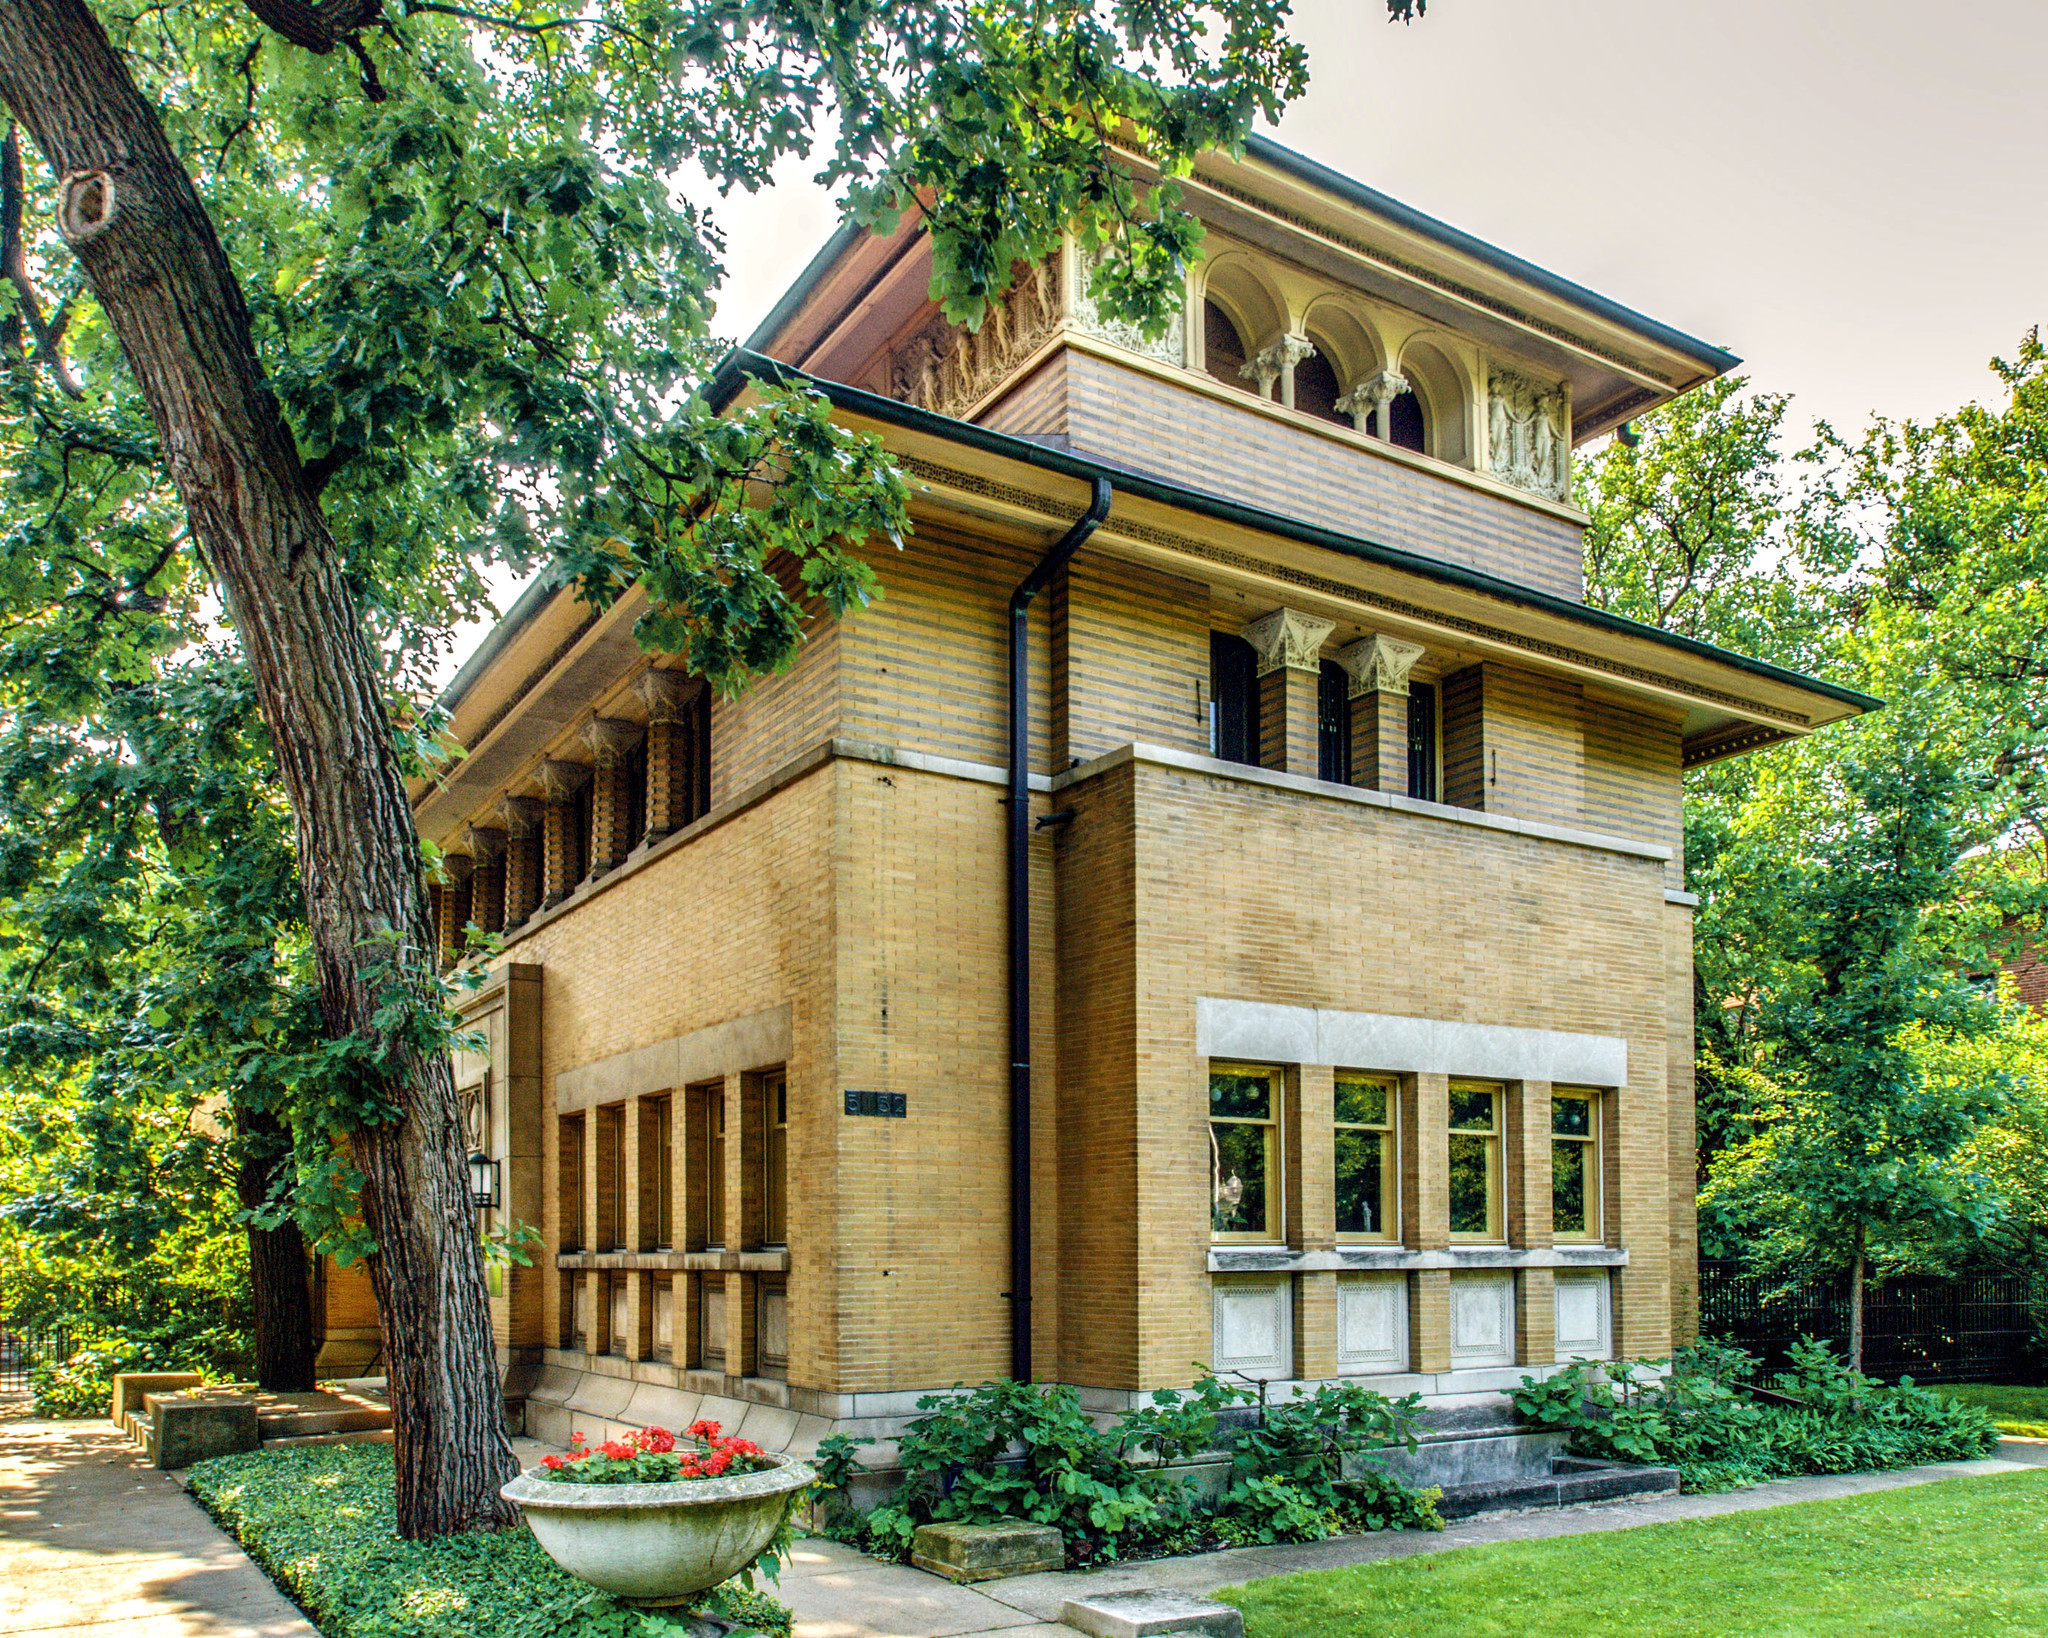 Frank Lloyd Wright Chicago Map.Frank Lloyd Wright S Heller House For Sale Again In Hyde Park For